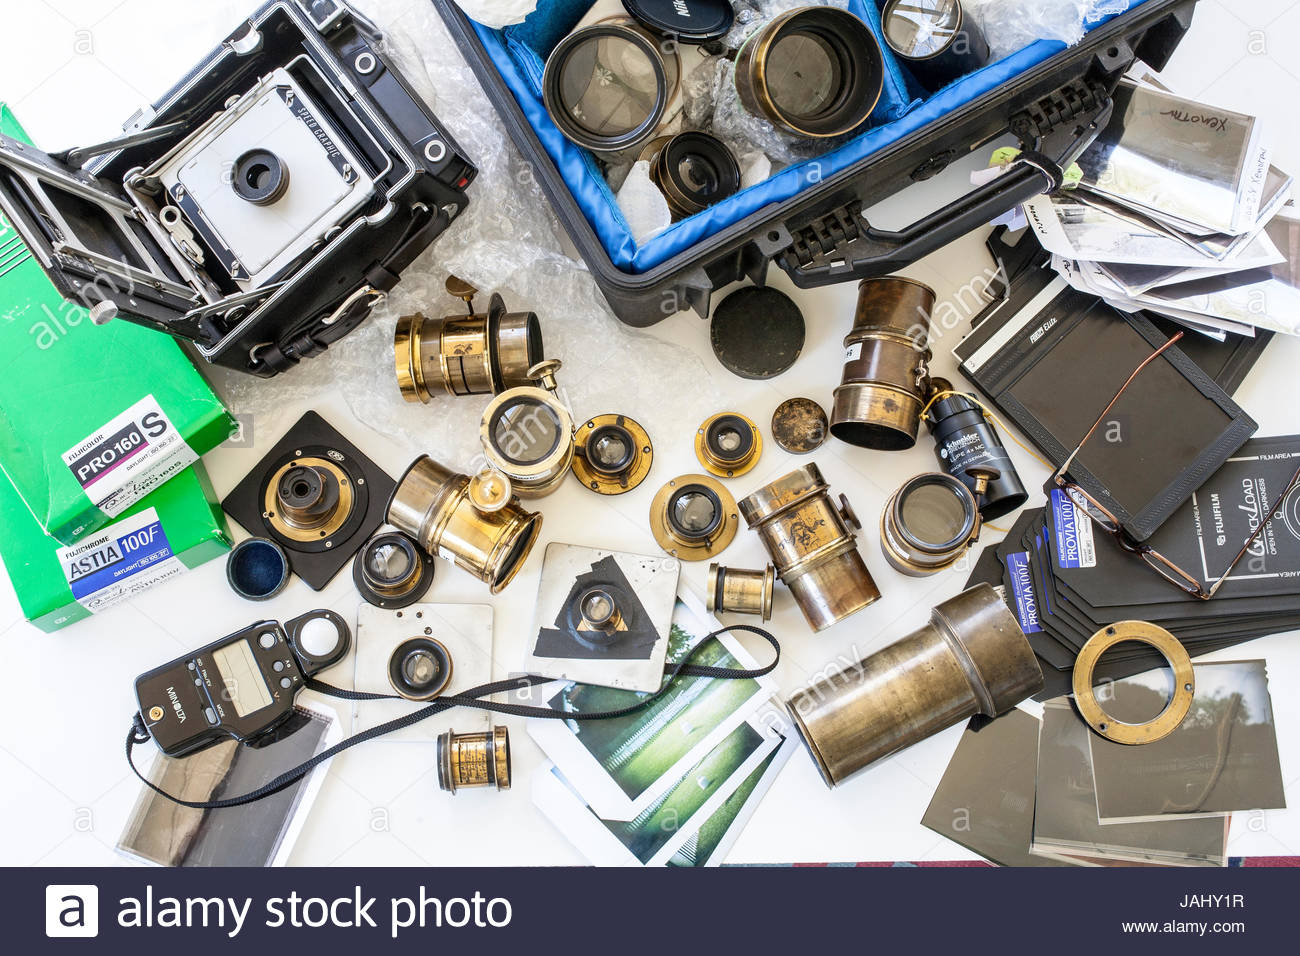 Large format photographic equipment, including film and vintage lenses. - Stock Image